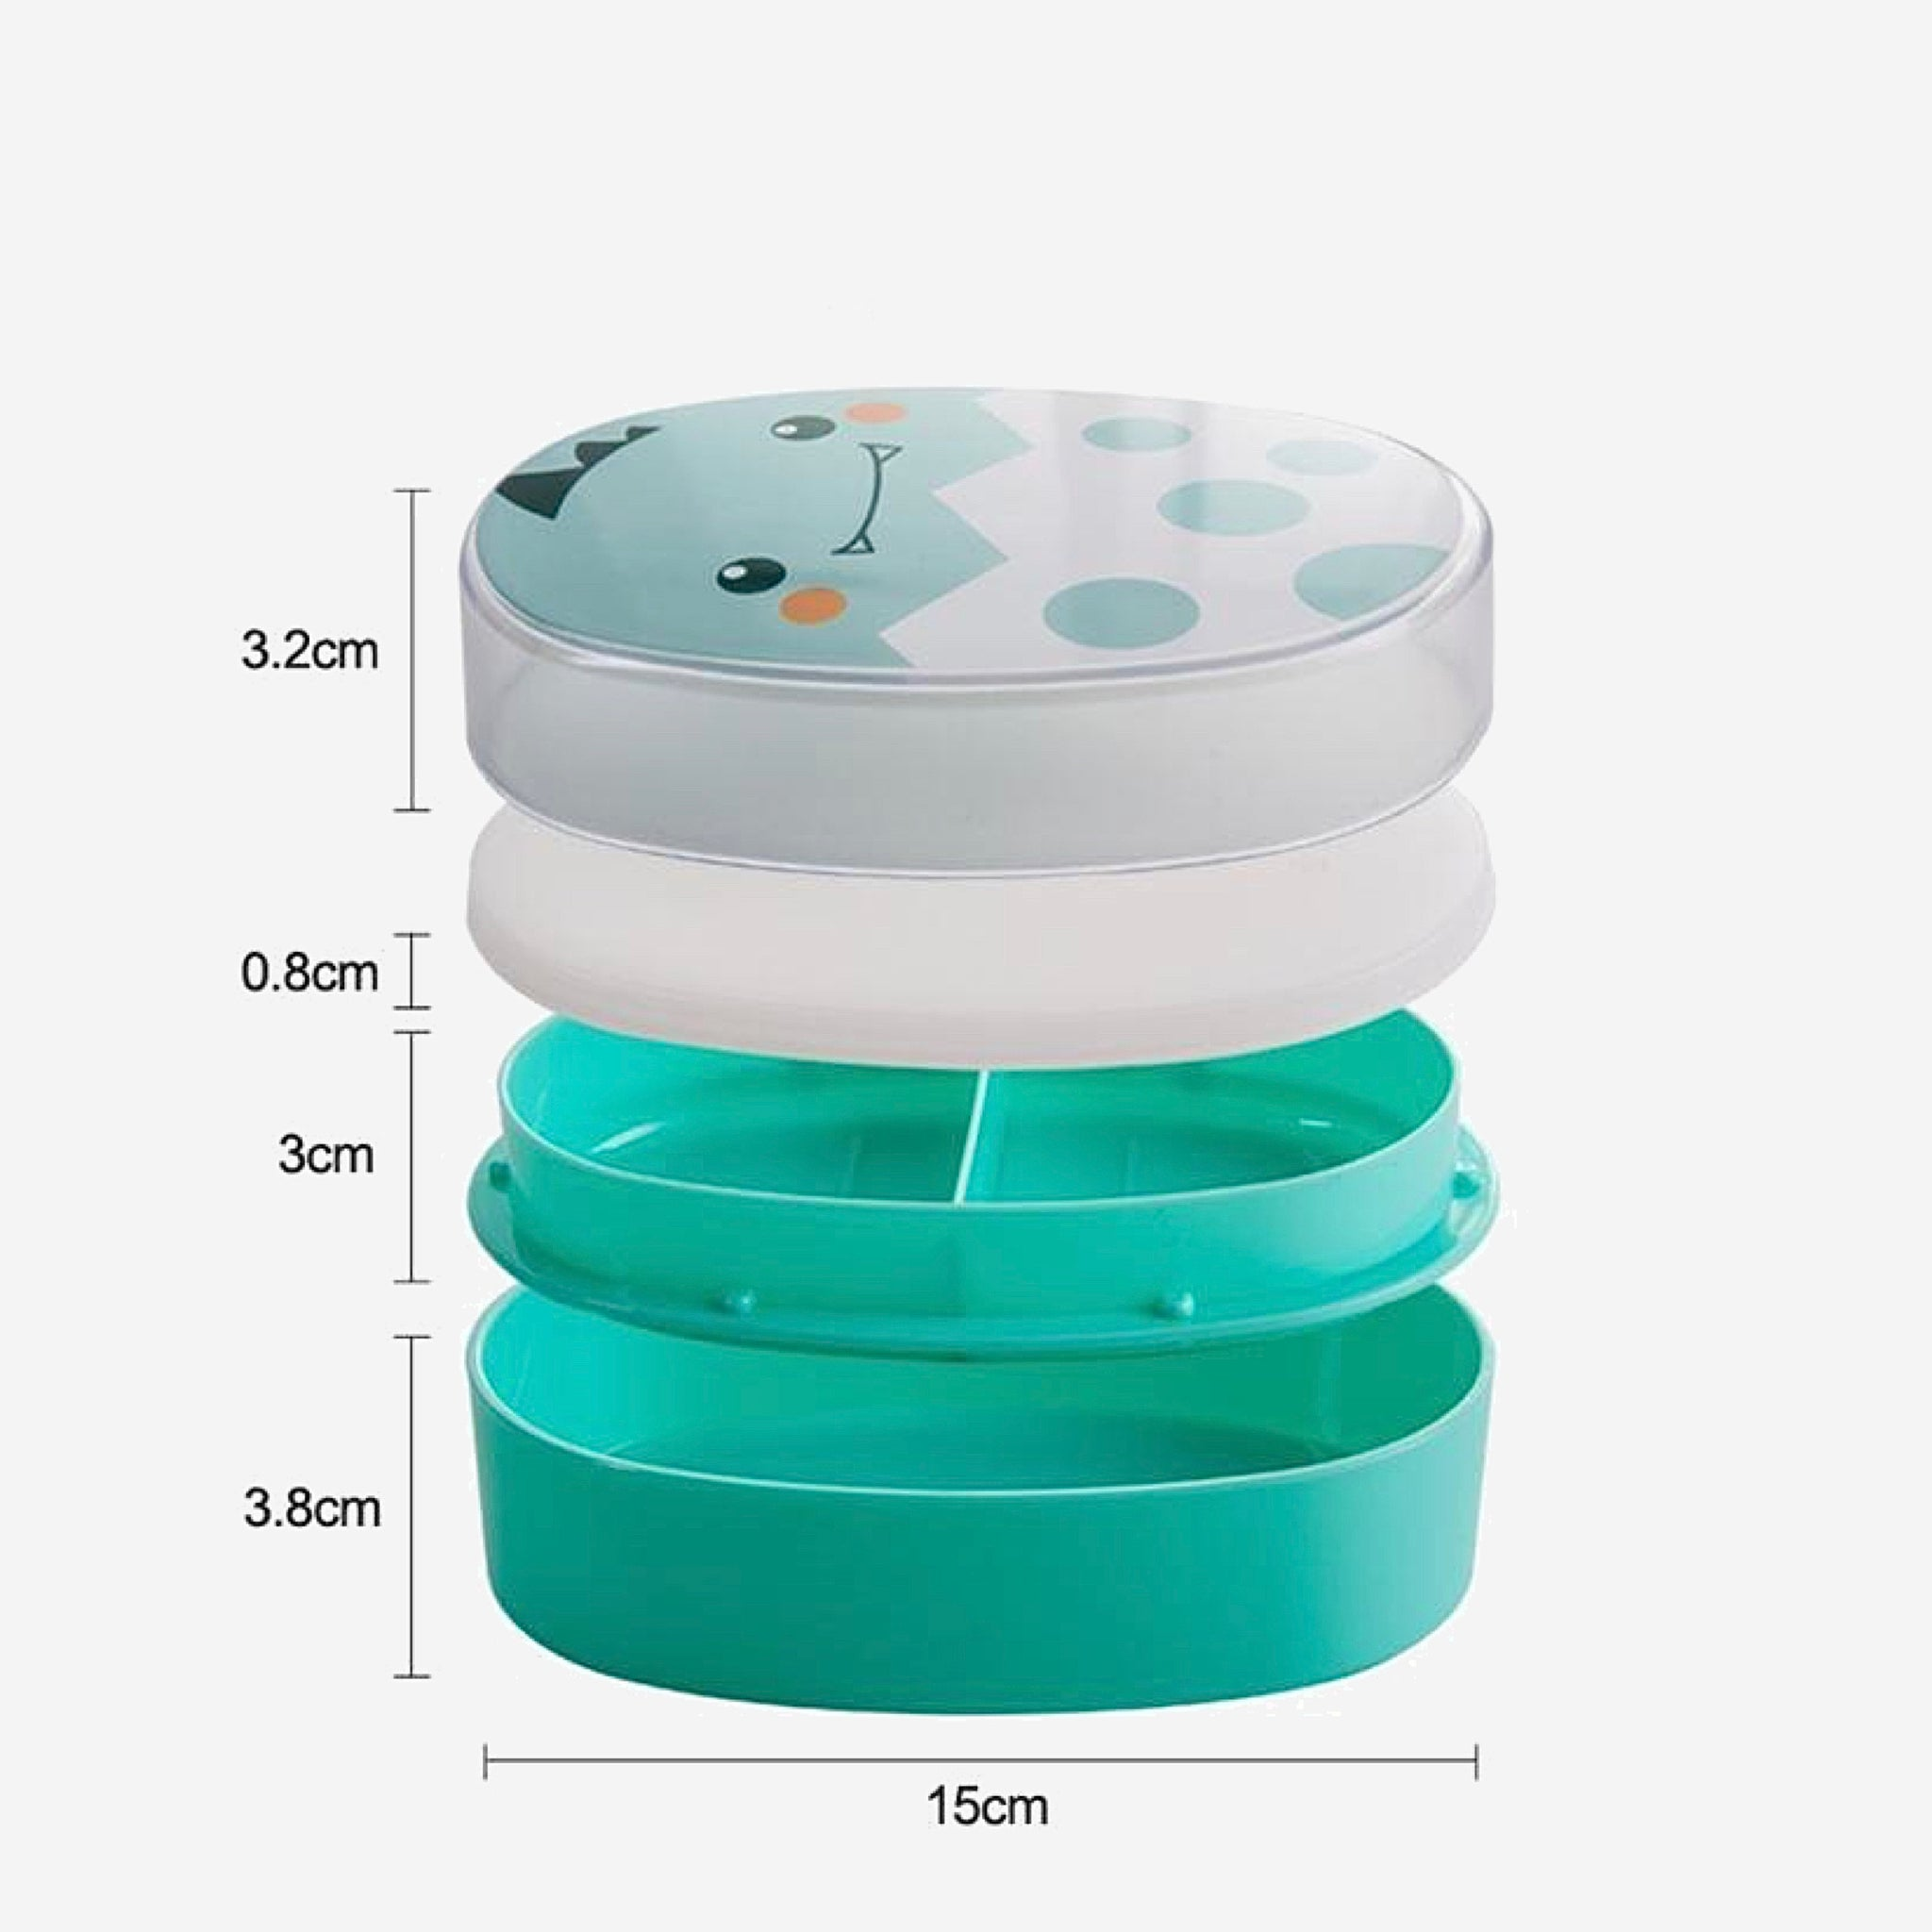 700ml Cartoon Lunch Box Cute Kids Microwave Oven Healthy Bento Boxes BPA Free Lunchbox Size Chart